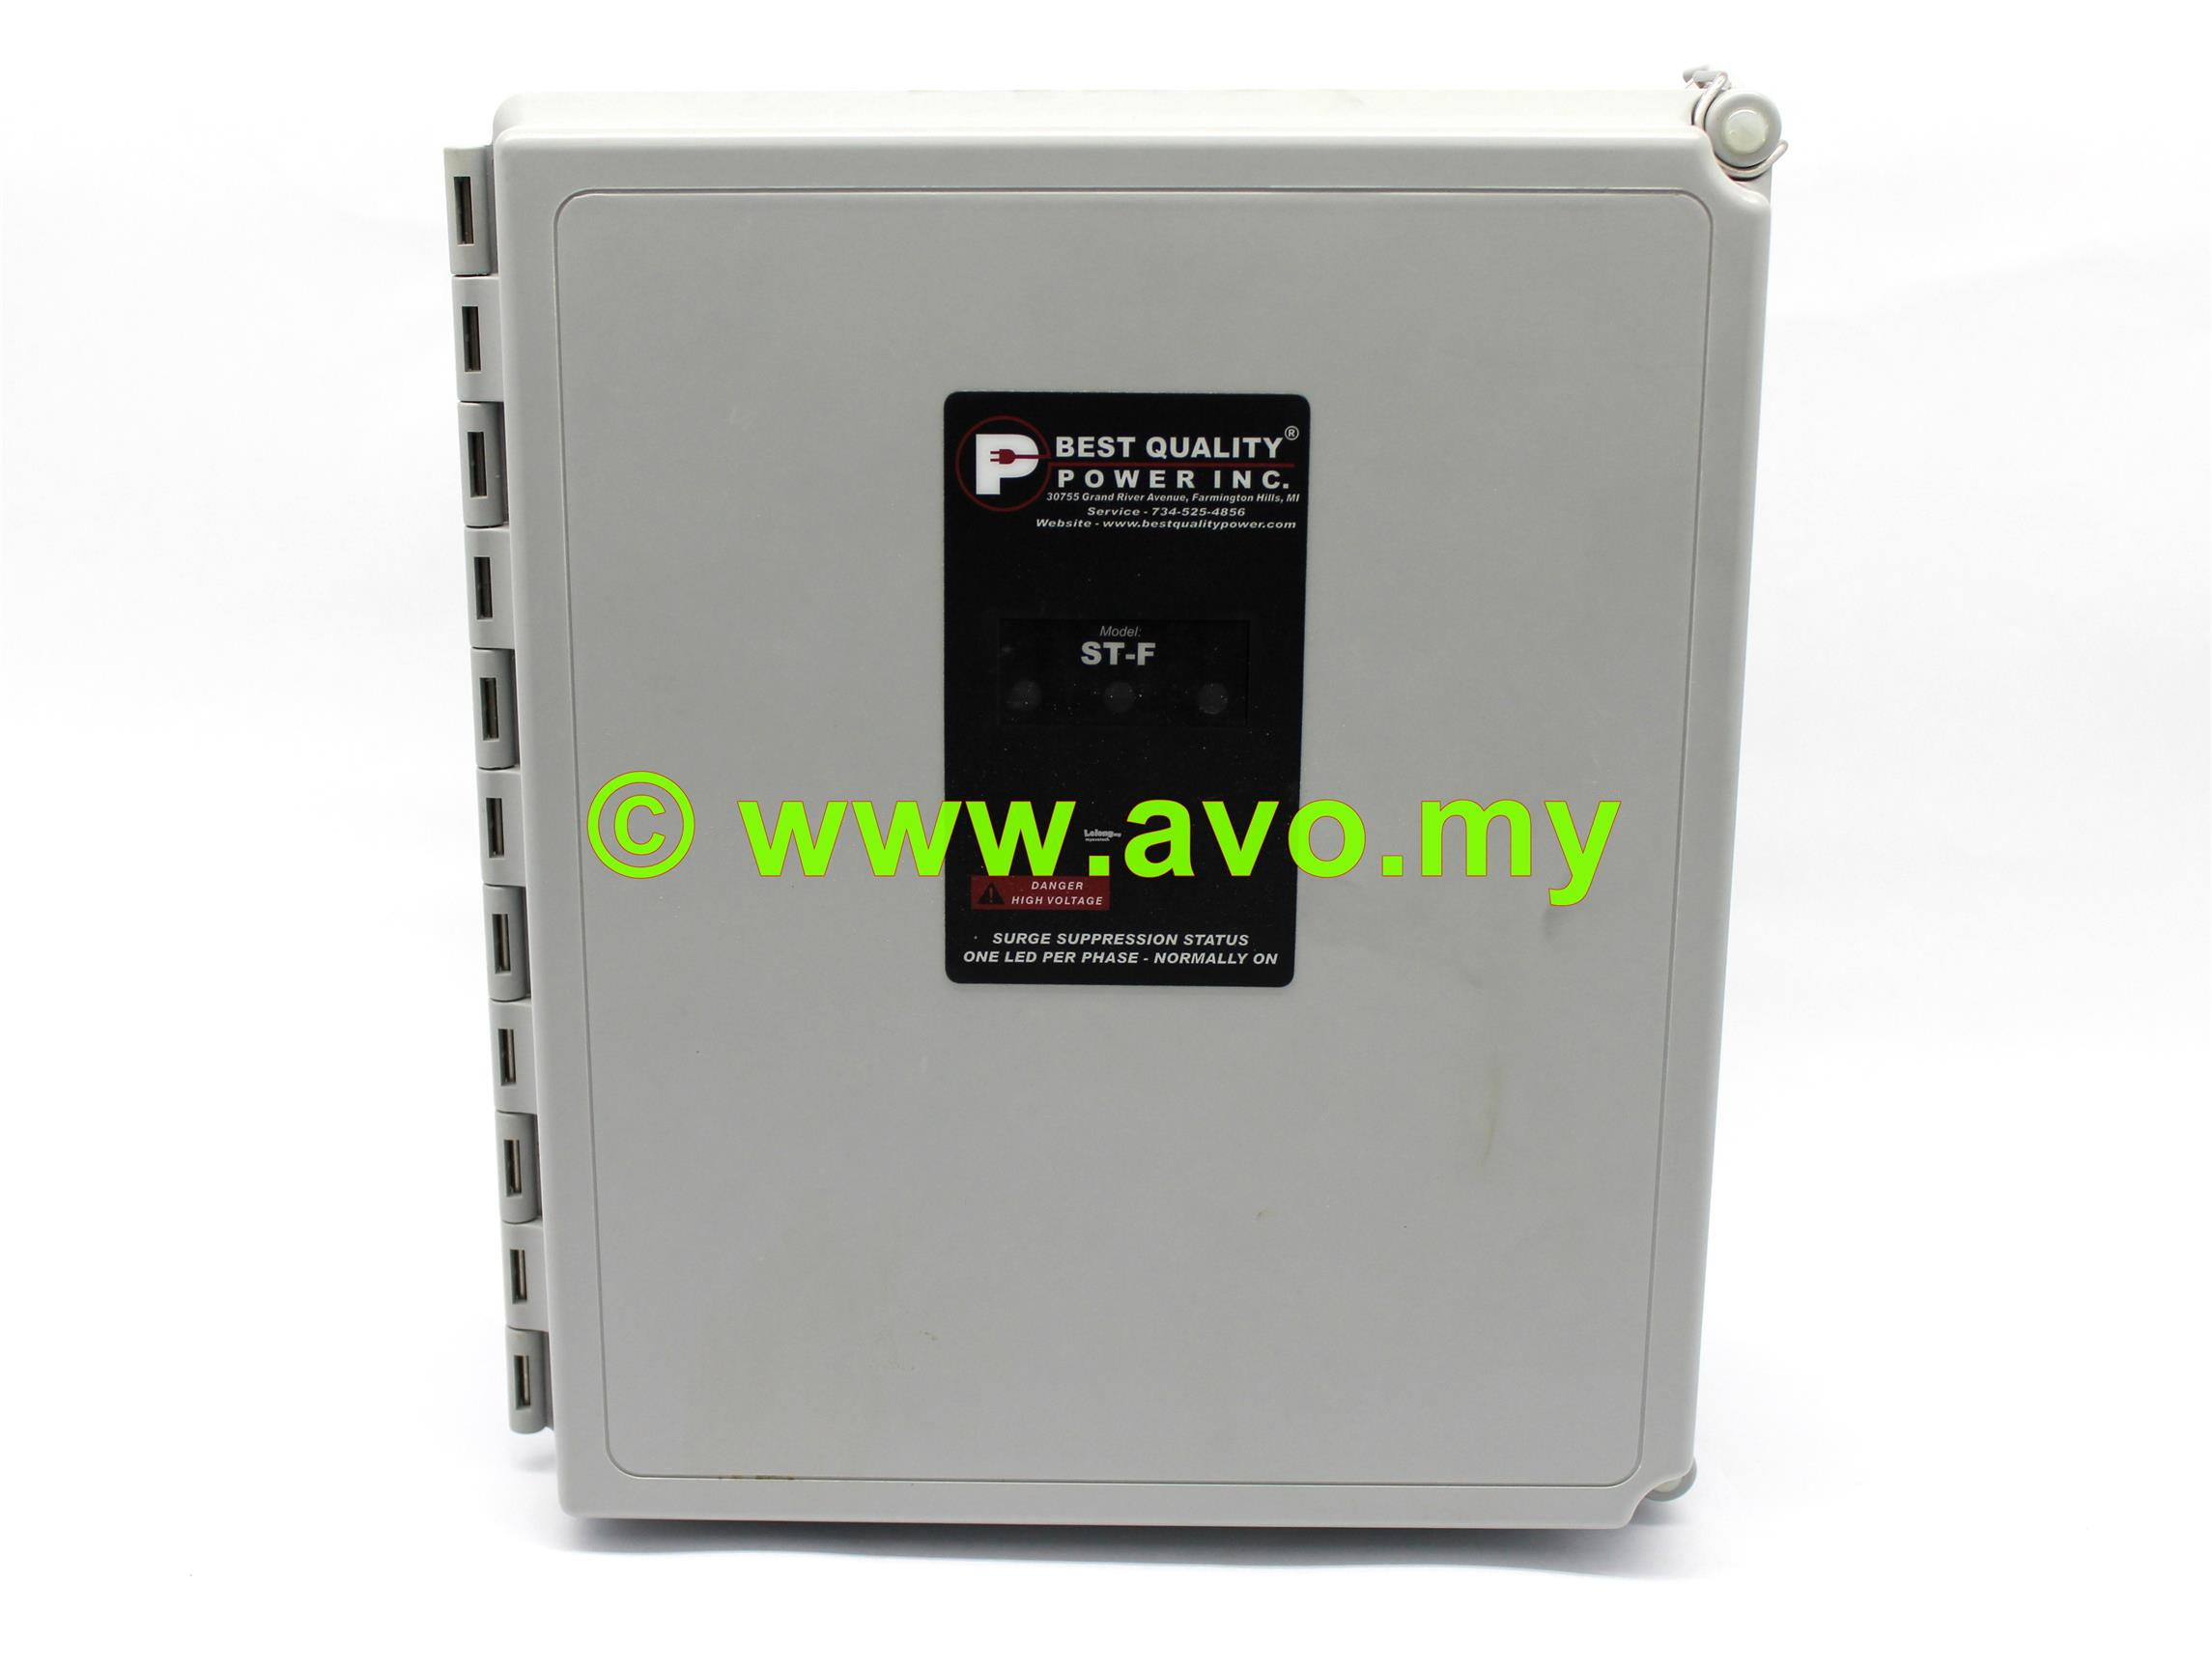 Best Quality Power CF Series, Model: ST-F-040-3N4-CF